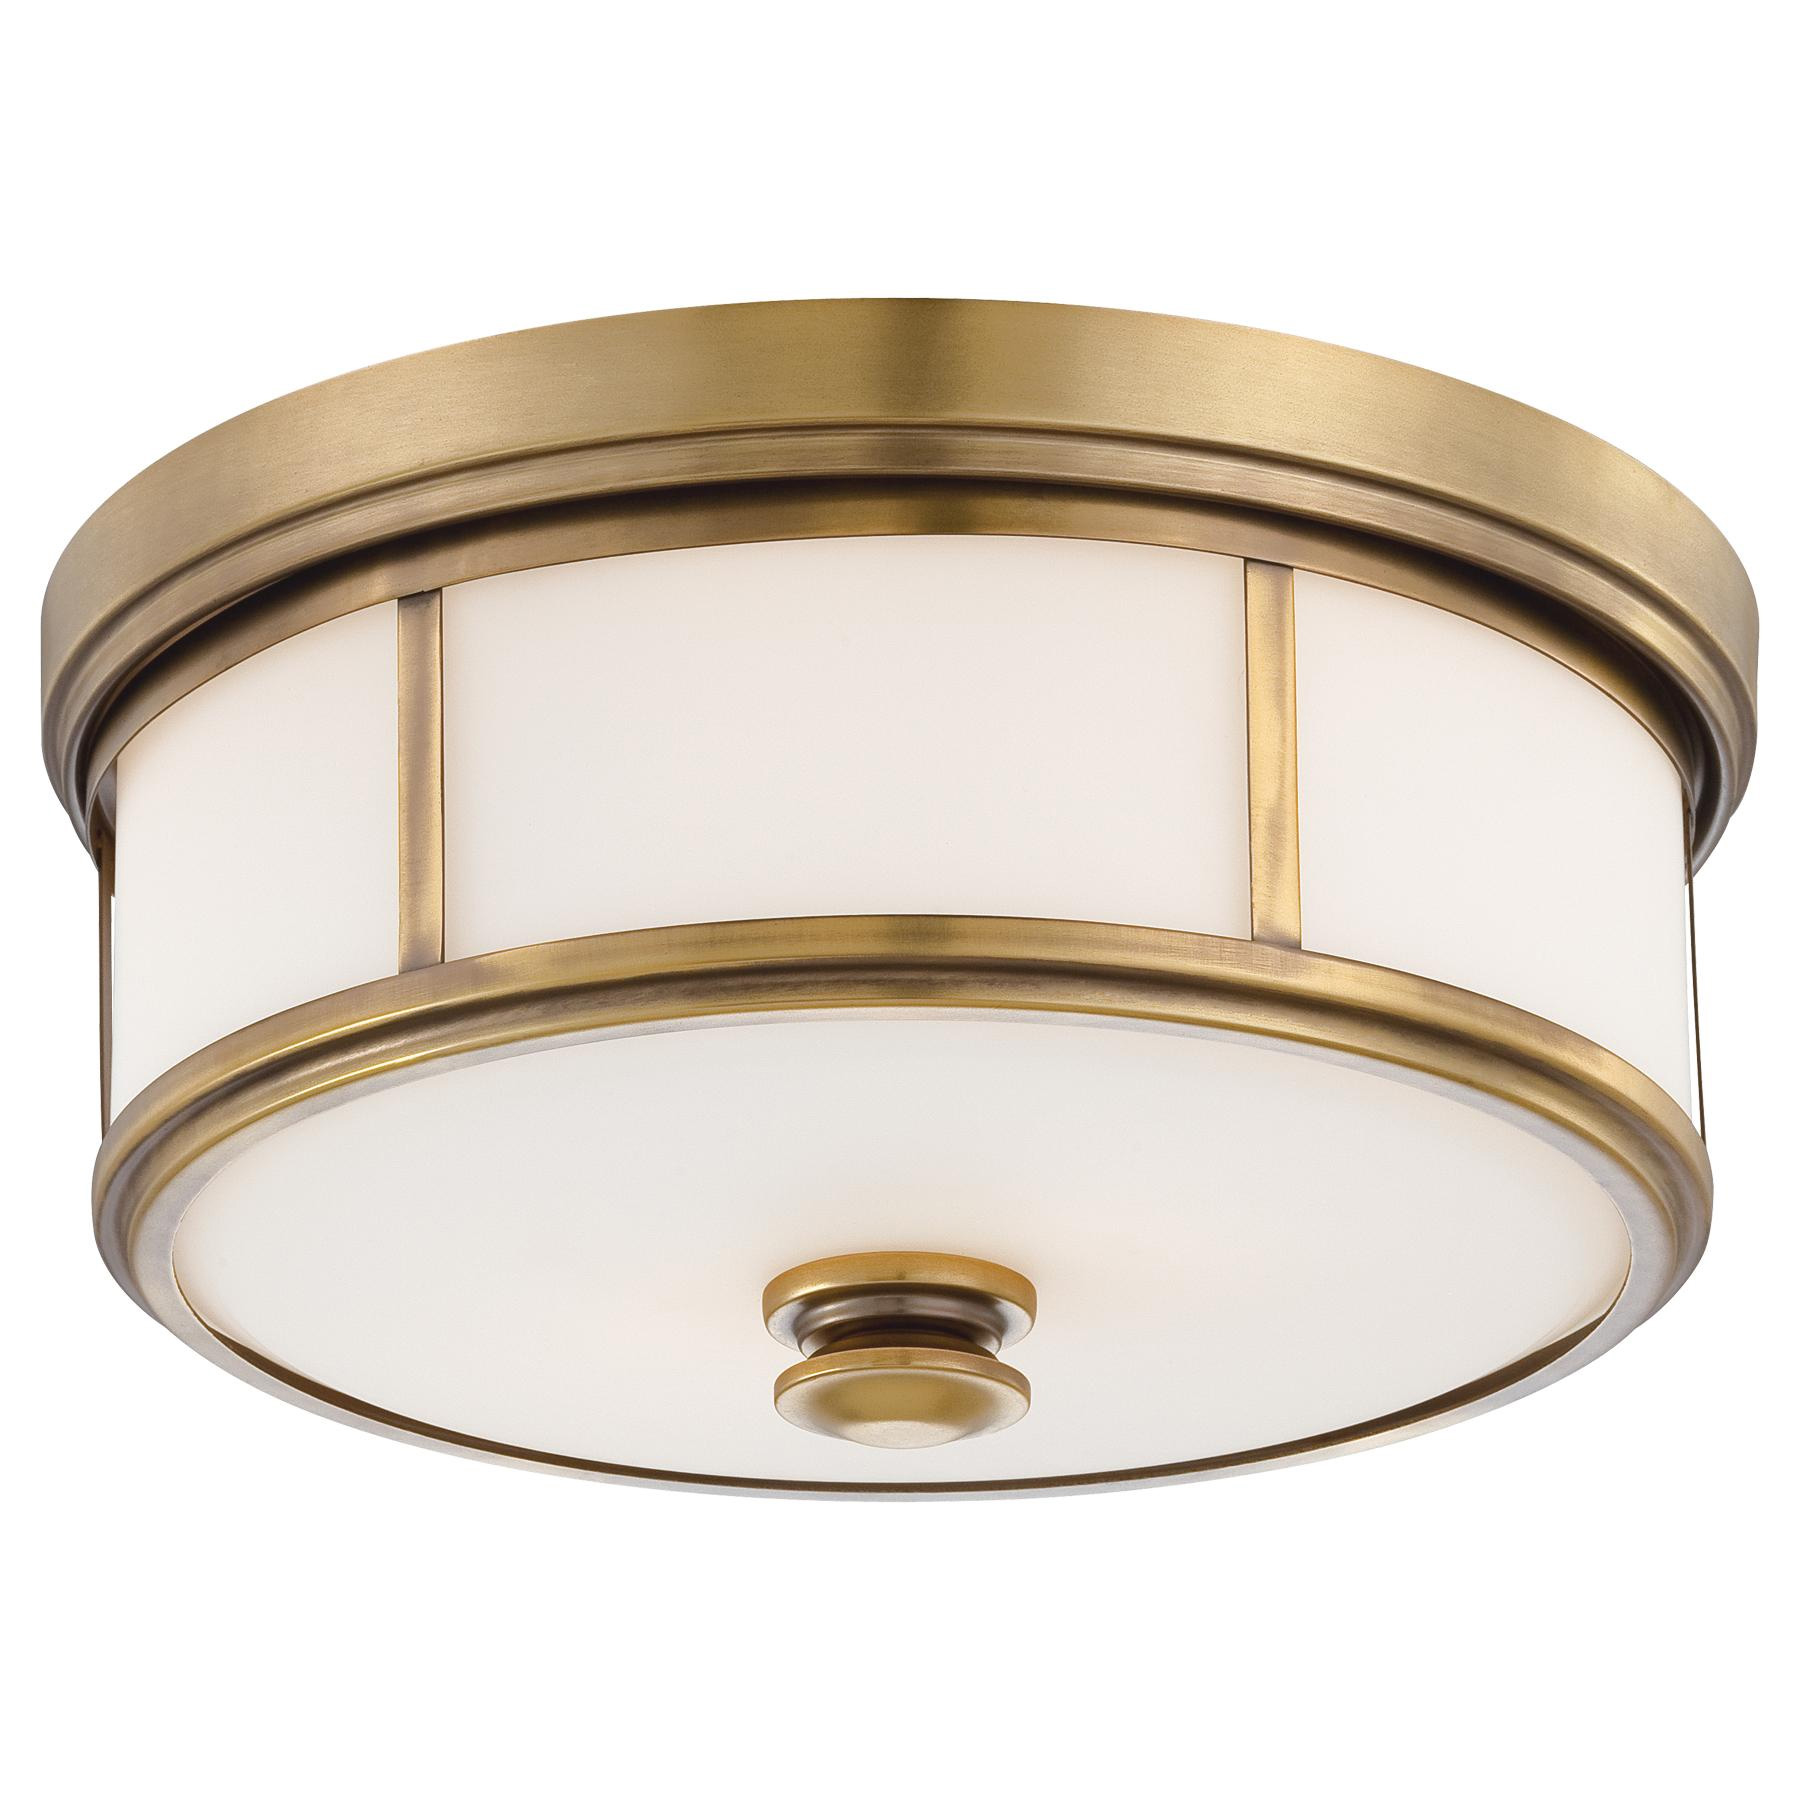 Harbour point small ceiling light fixture by minka lavery